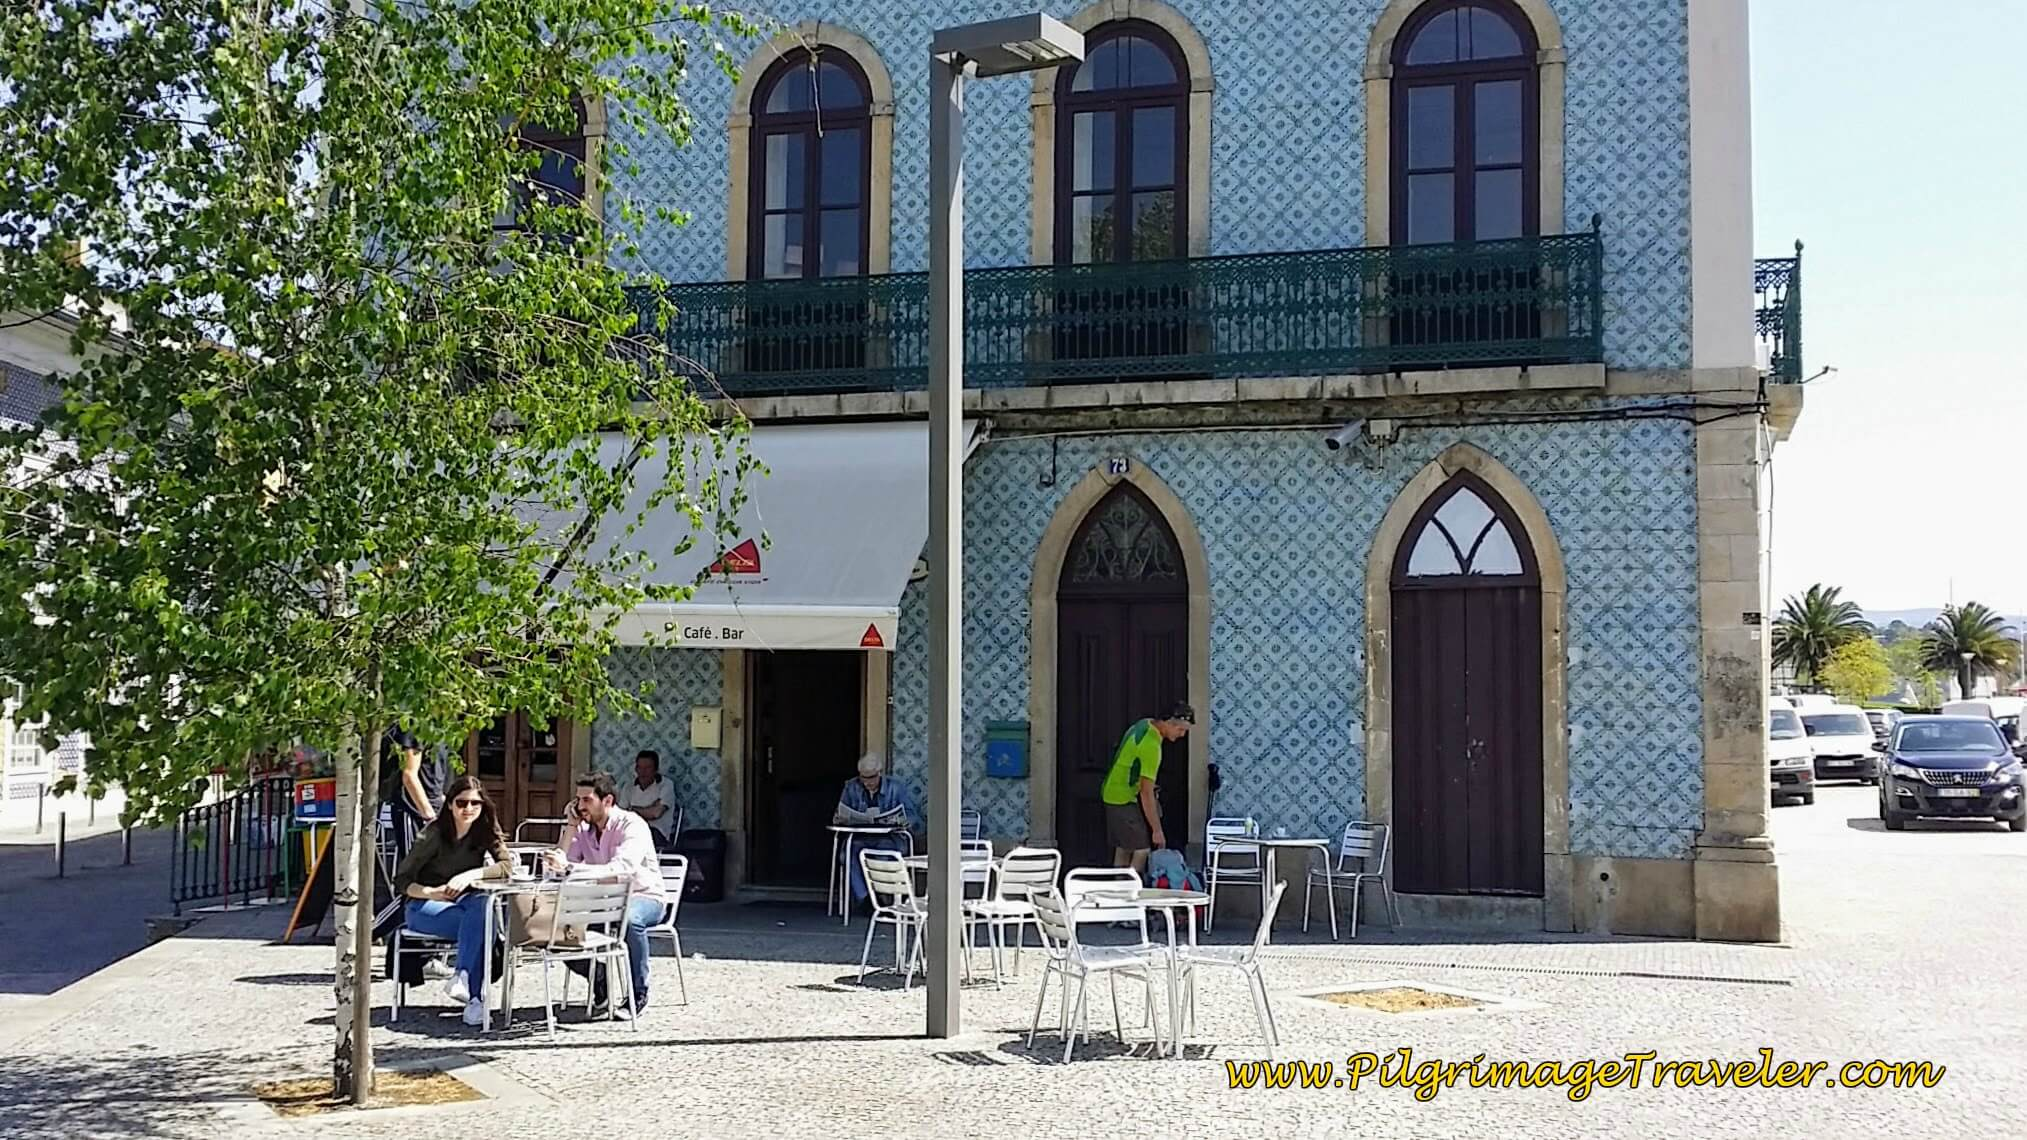 Café Bar Gambuzinos Along the Rio Águeda, a place for a nice break on day eleven of the Camino Portugués